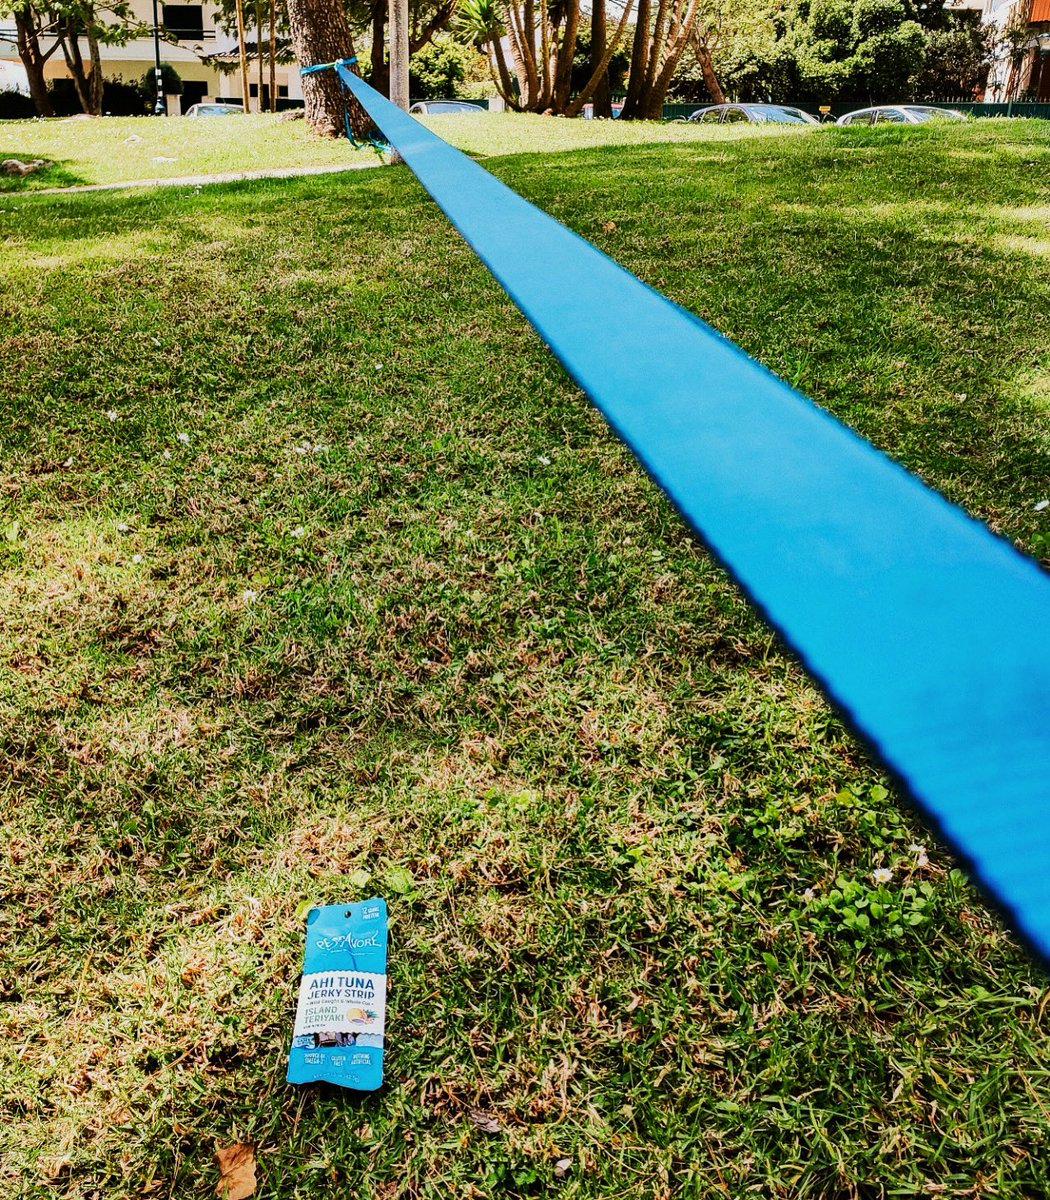 Warm winter weekend vibes and local adventures with jerky and a slack line, what else is needed? ☀️   #playathome #snack #slackline #jerky